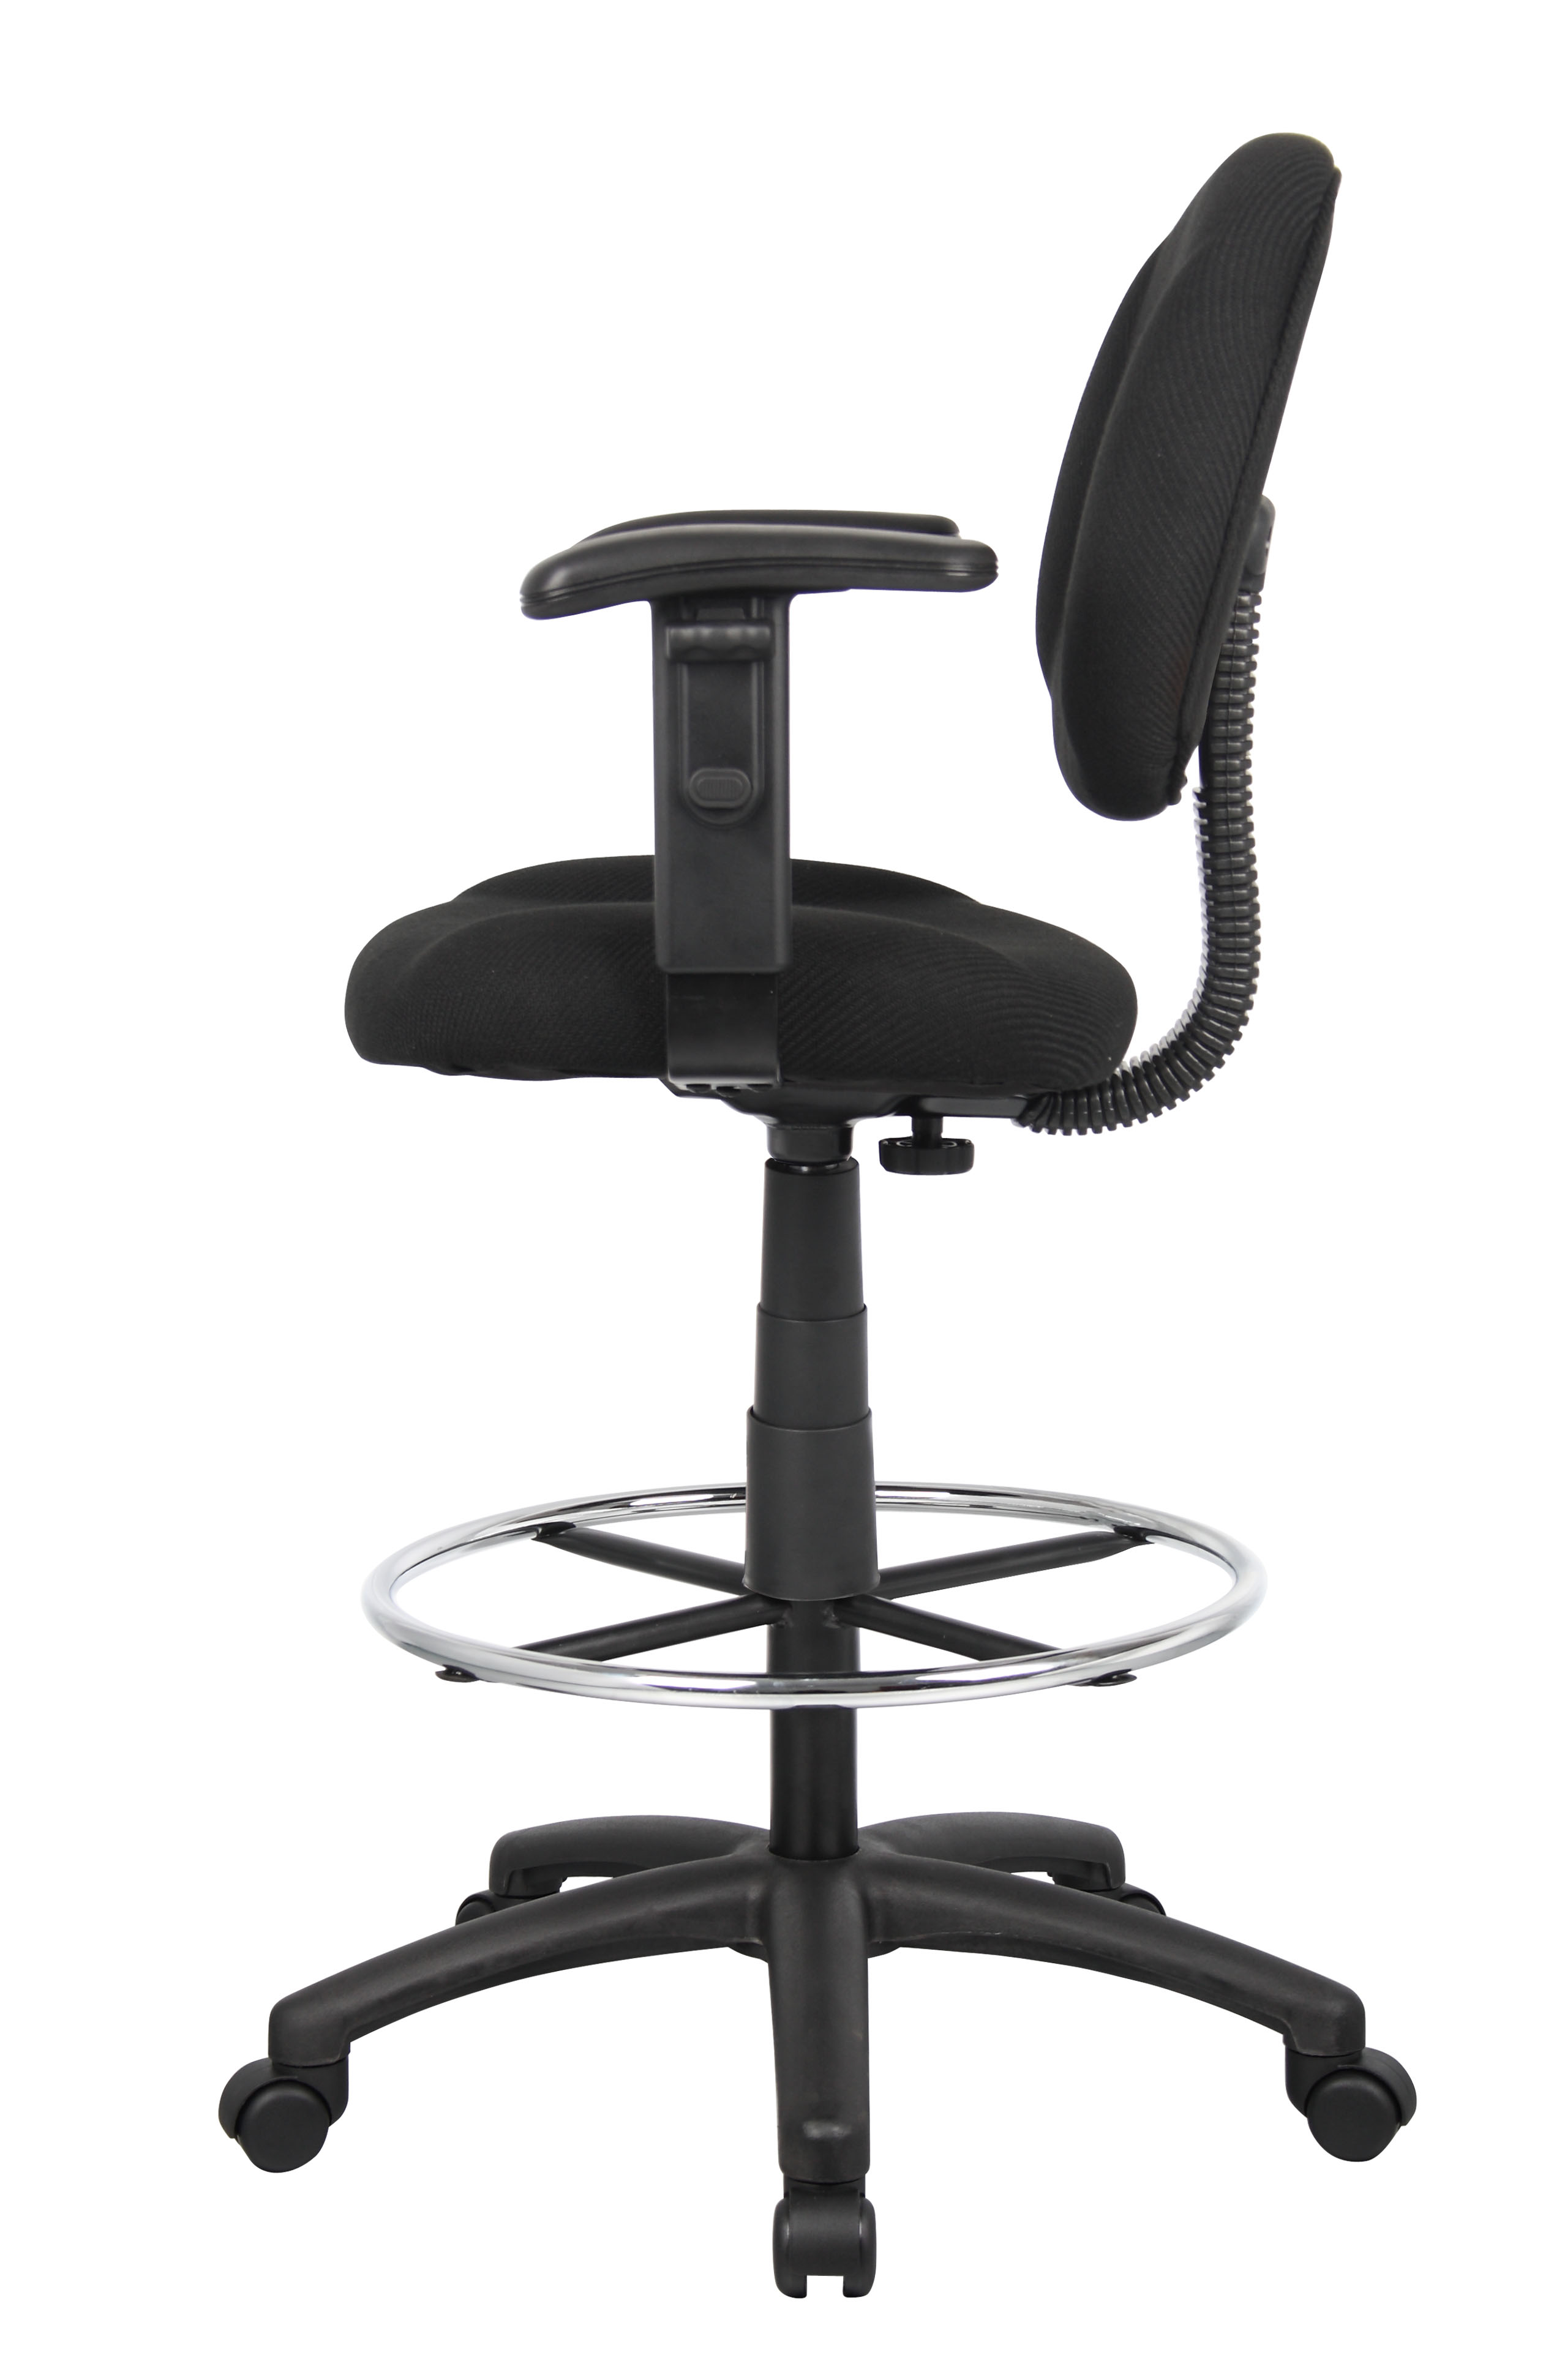 Peachy Boss Ergonomic Works Adustable Drafting Chair With Adjustable Arms And Removable Foot Rest Black Creativecarmelina Interior Chair Design Creativecarmelinacom